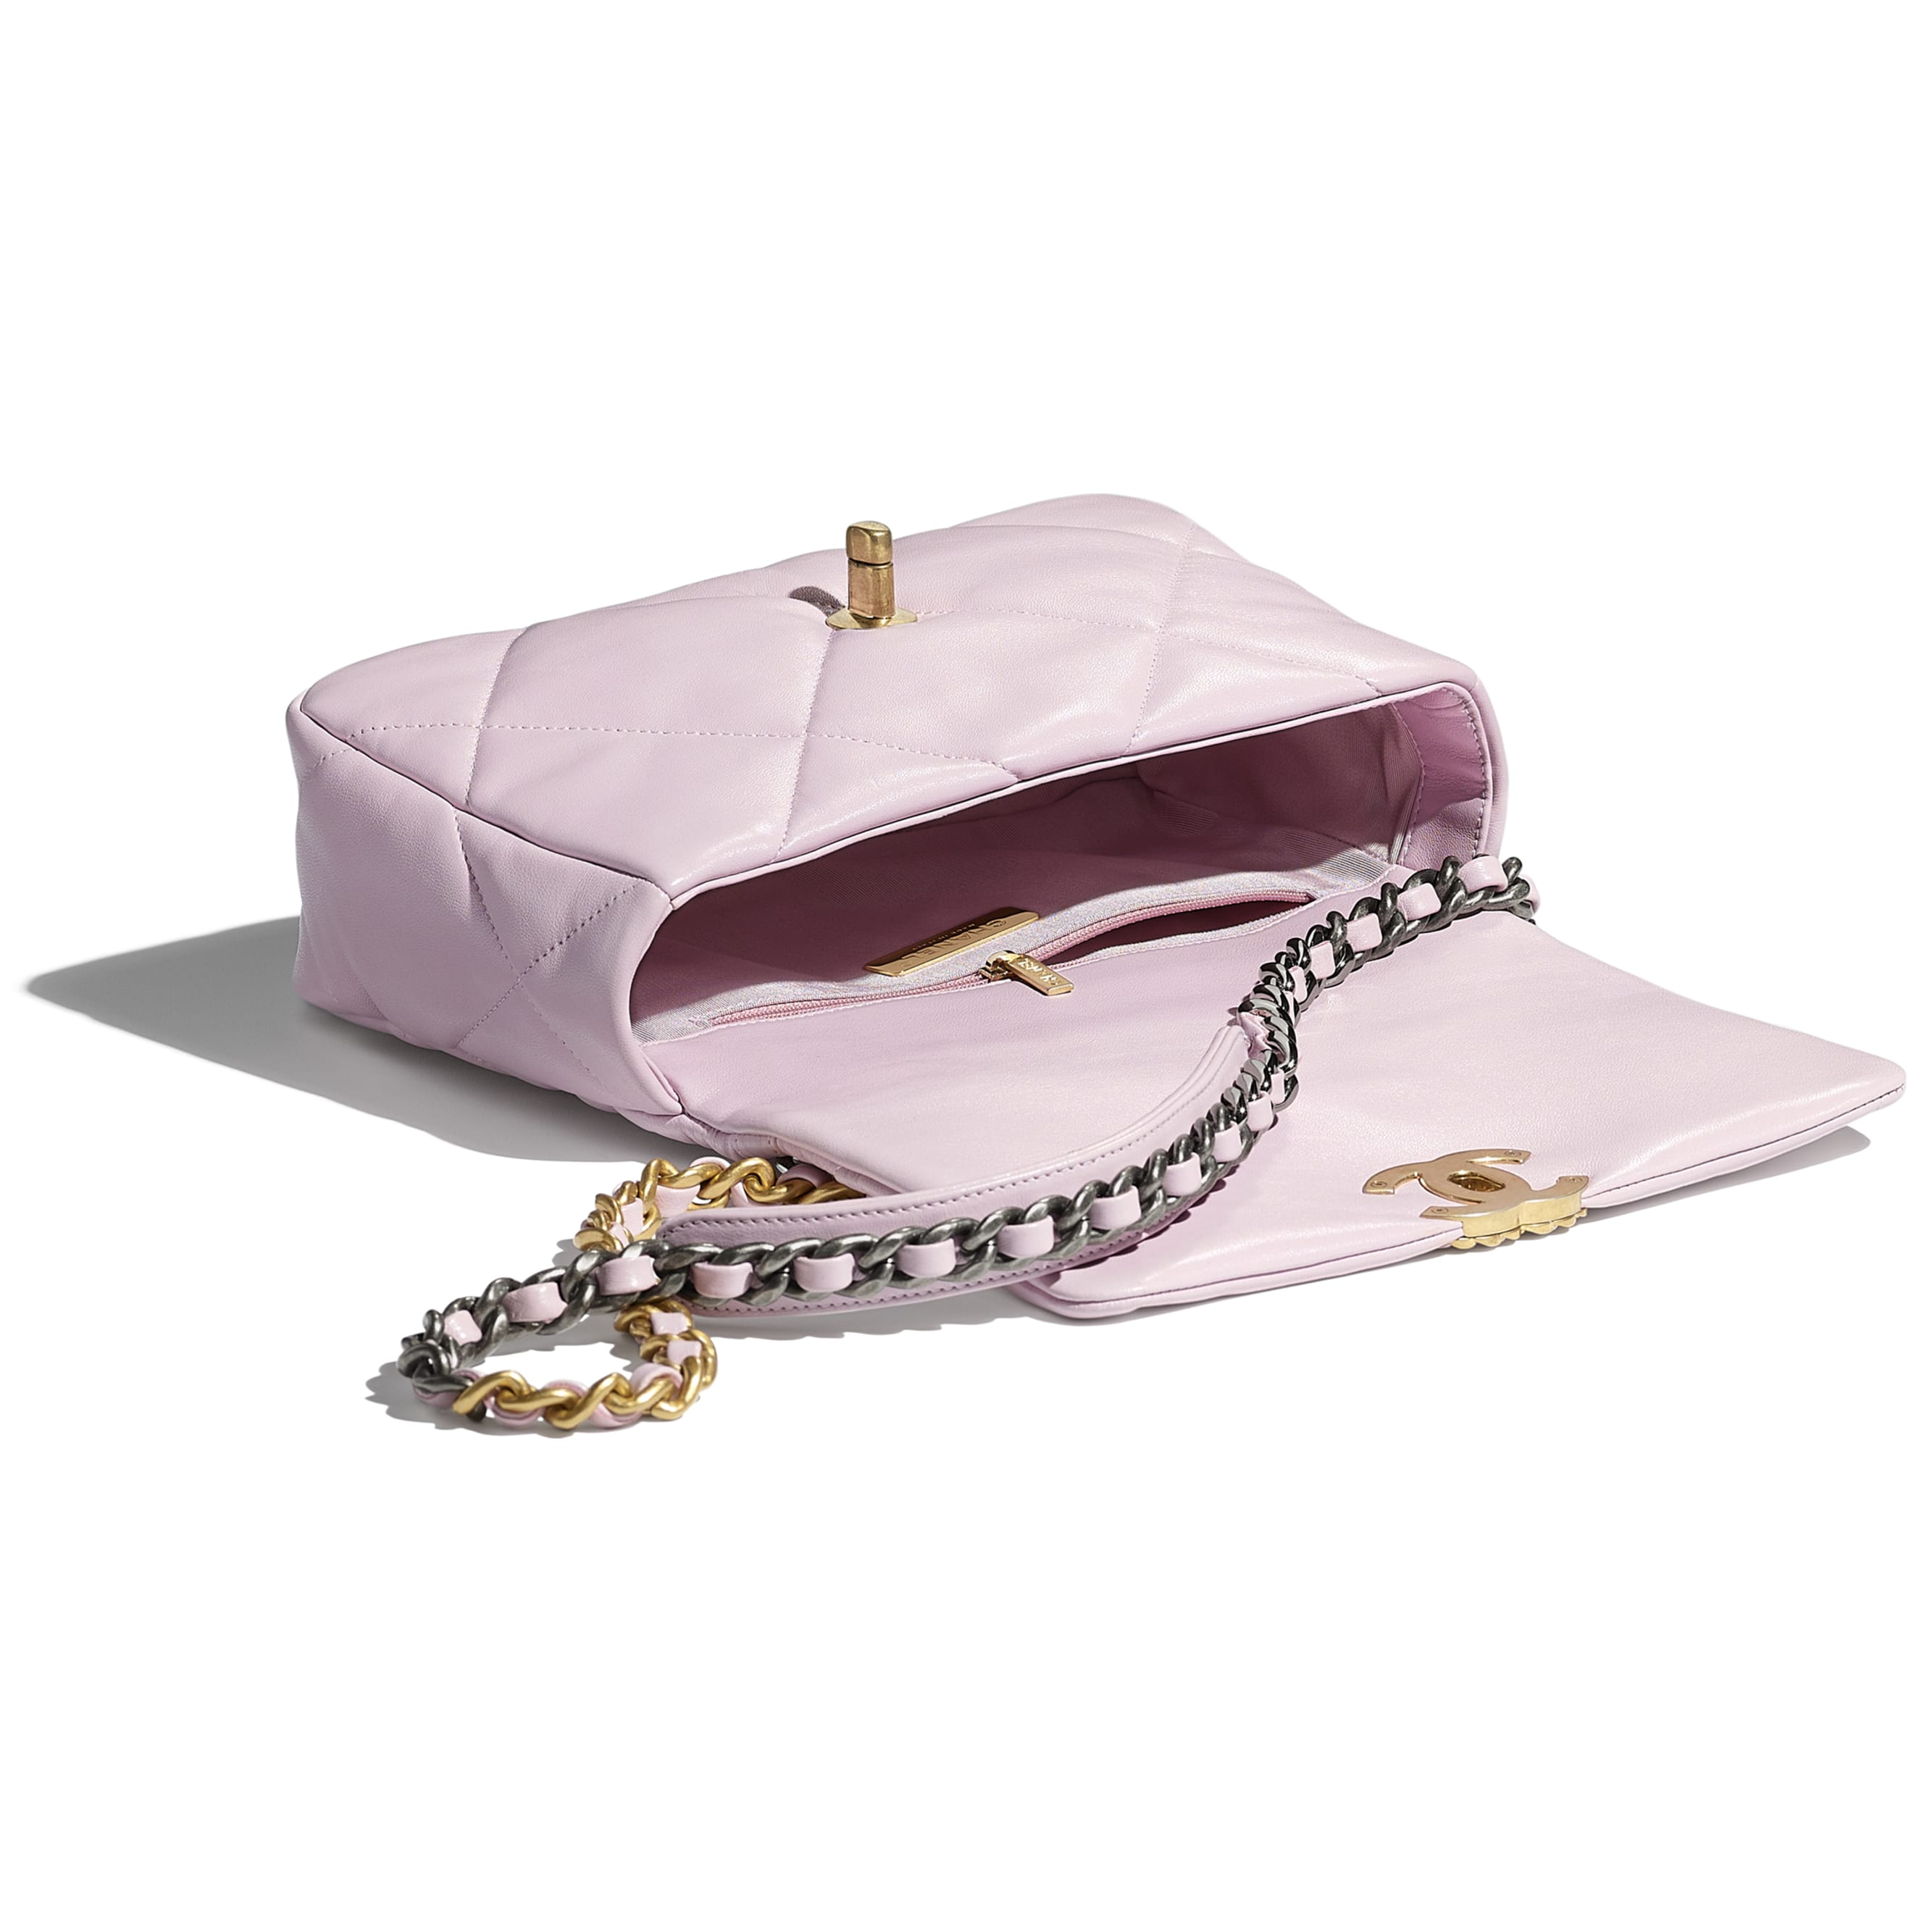 CHANEL 19 Flap Bag - Light Pink - Lambskin, Gold-Tone, Silver-Tone & Ruthenium-Finish Metal - CHANEL - Other view - see standard sized version